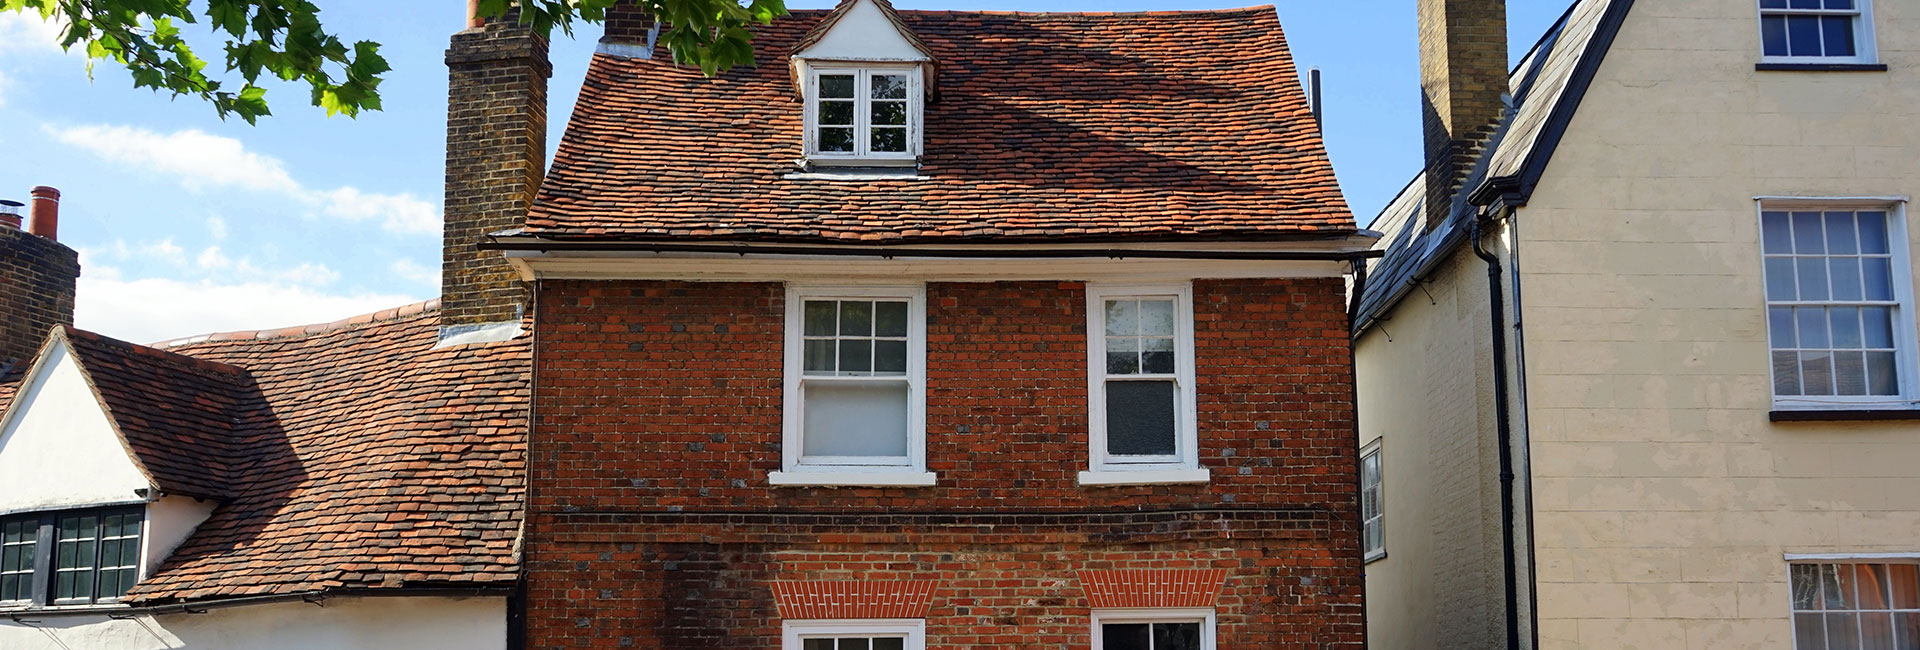 Property Activity Index reports highlights an unseasonal increases in the UK property market